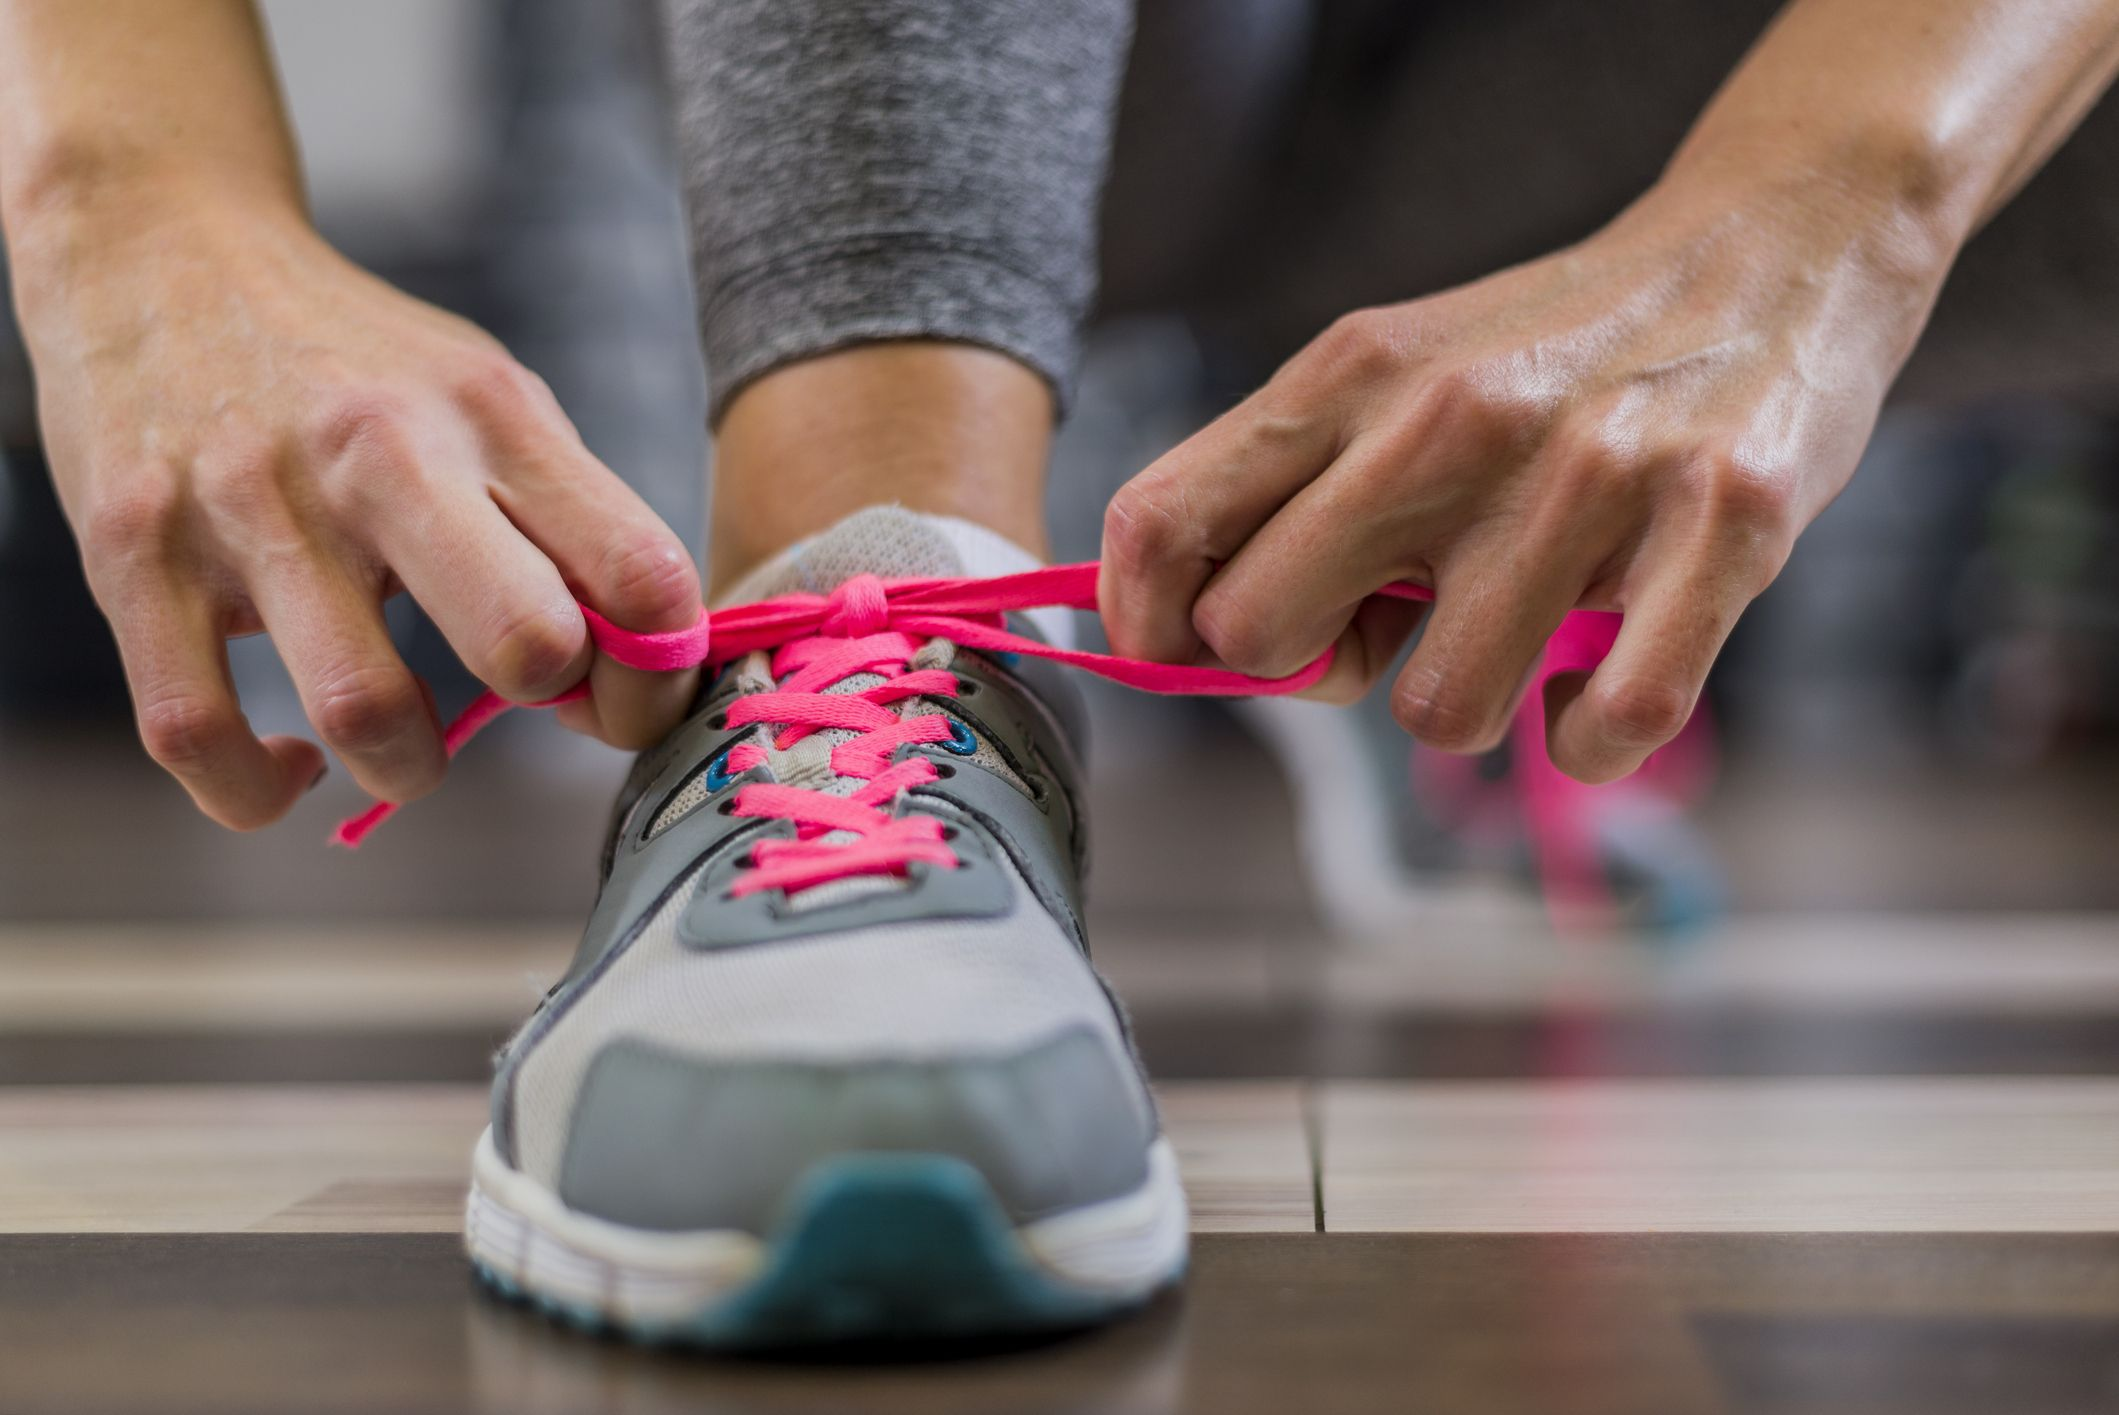 How to become a regular gym-goer if you struggle with stamina